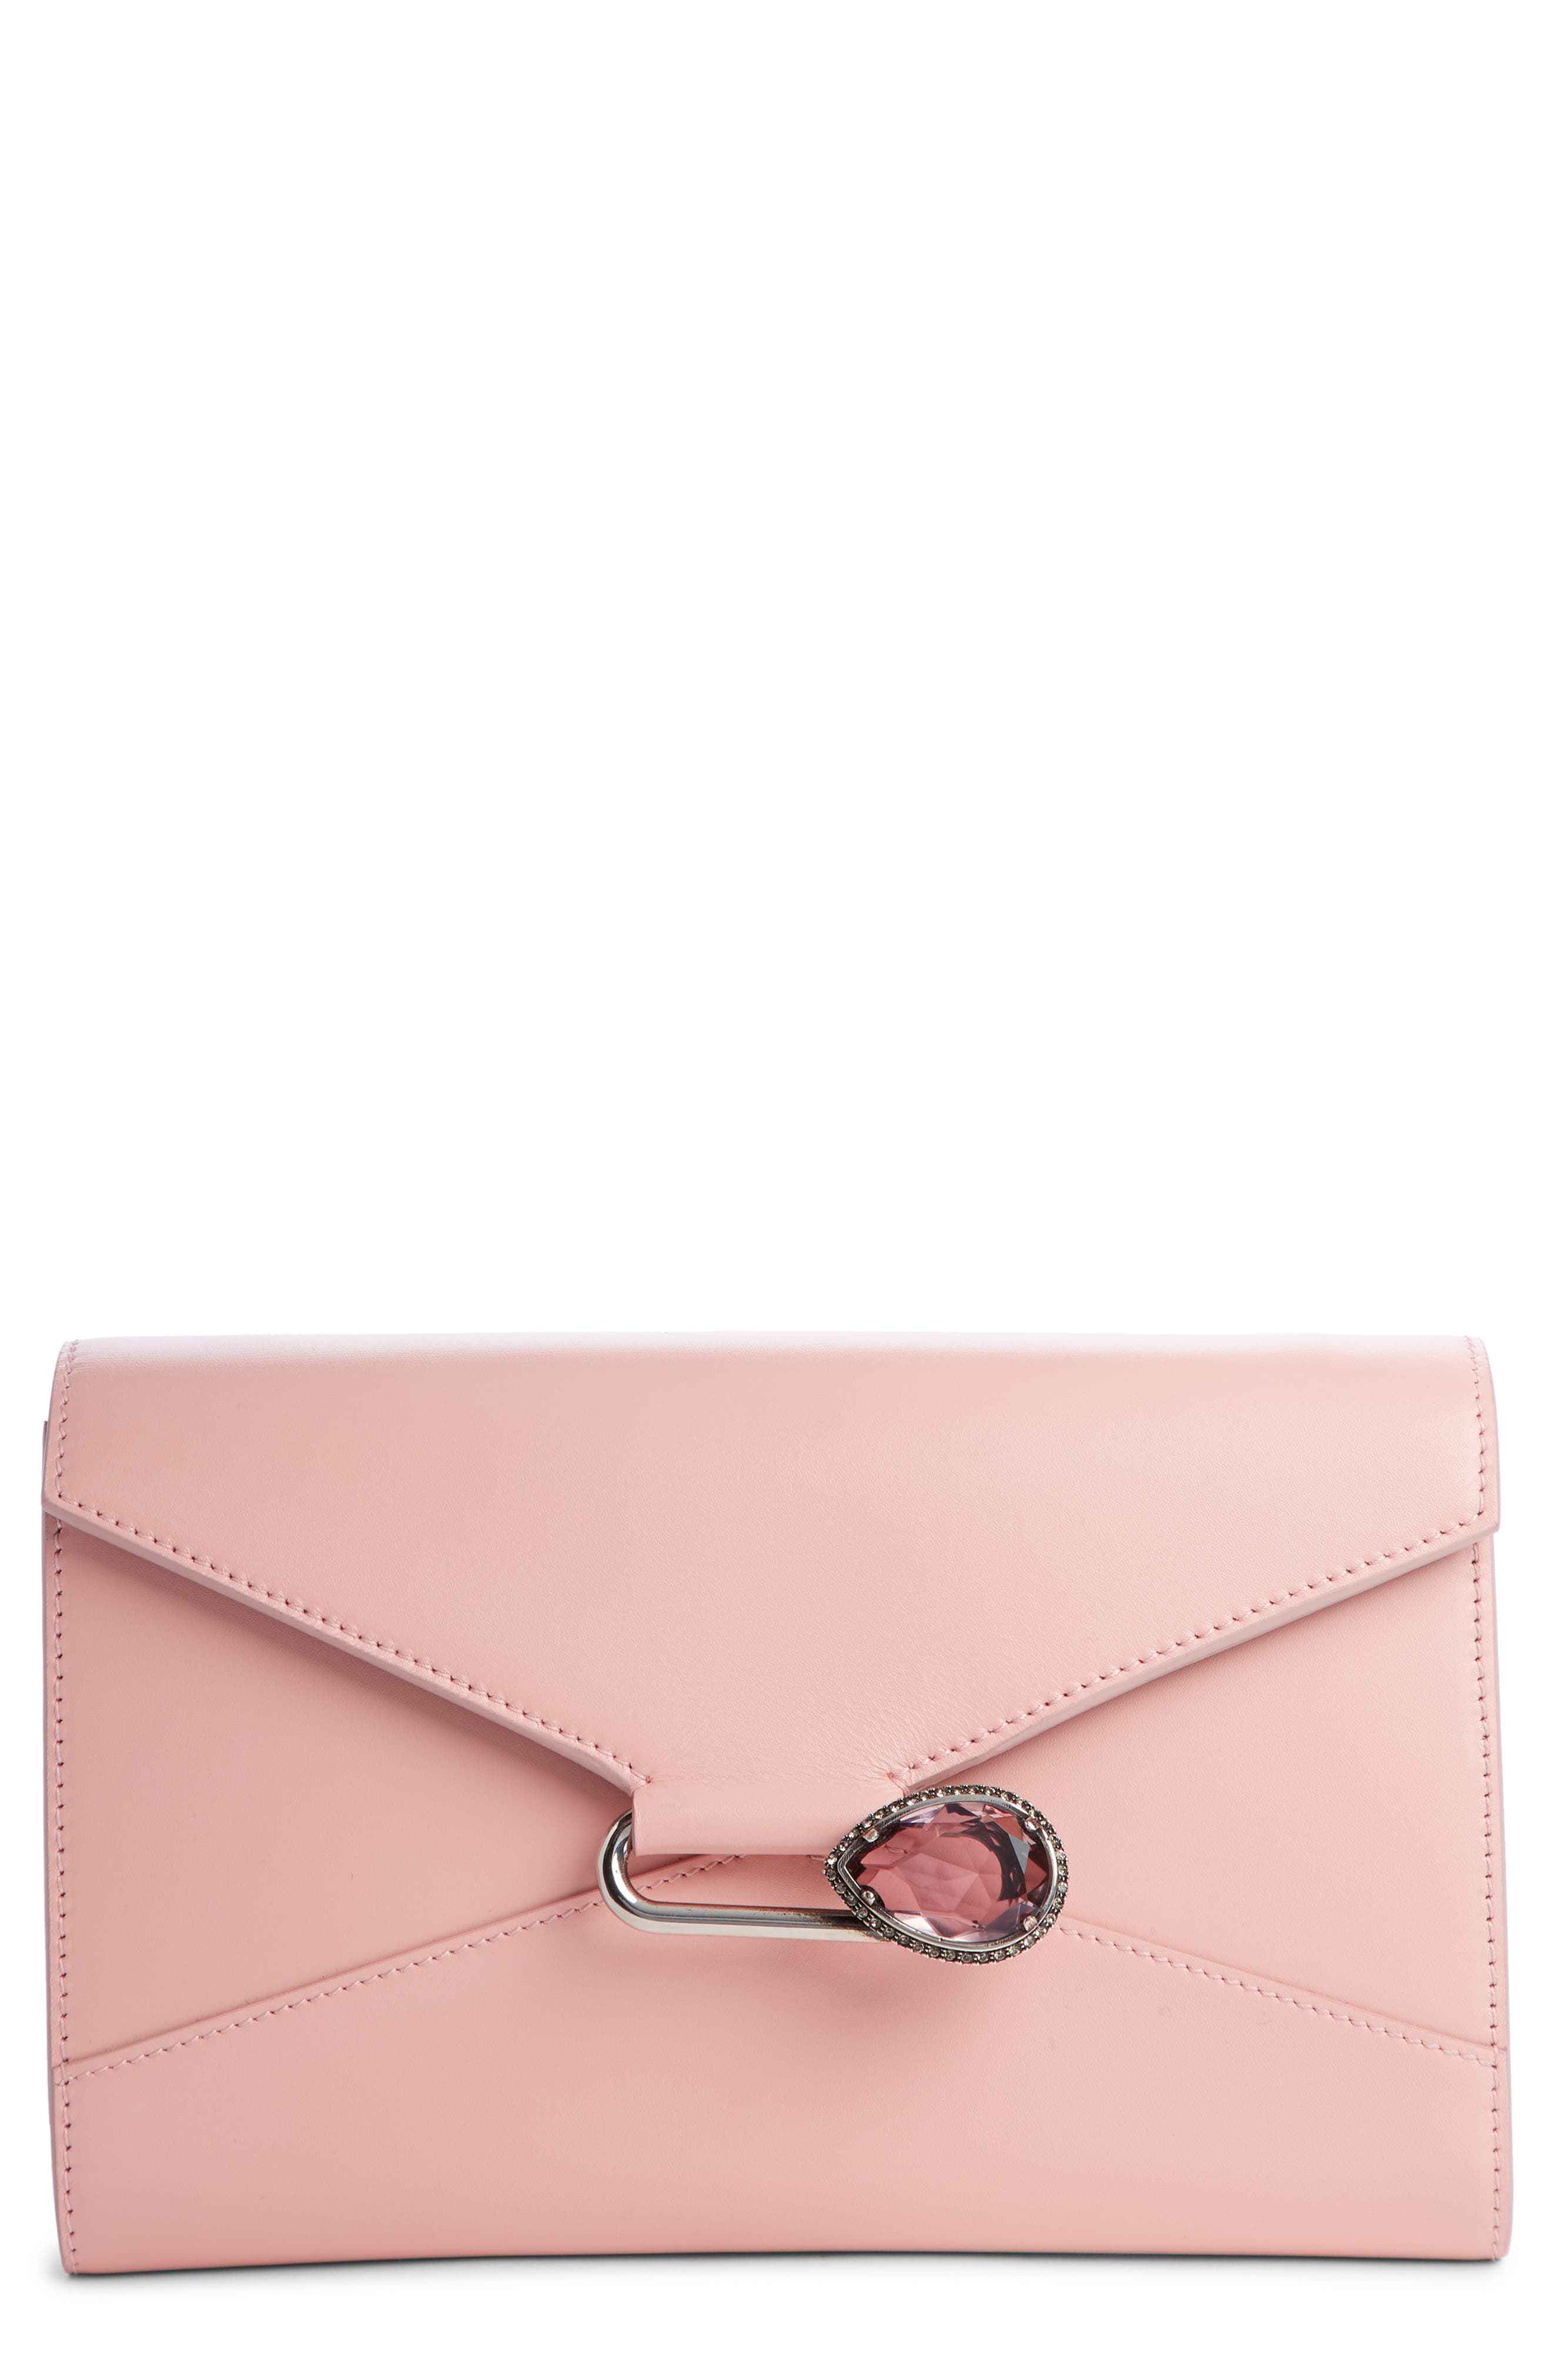 Pin Calfskin Wallet on a Chain,                             Main thumbnail 1, color,                             ANEMONE